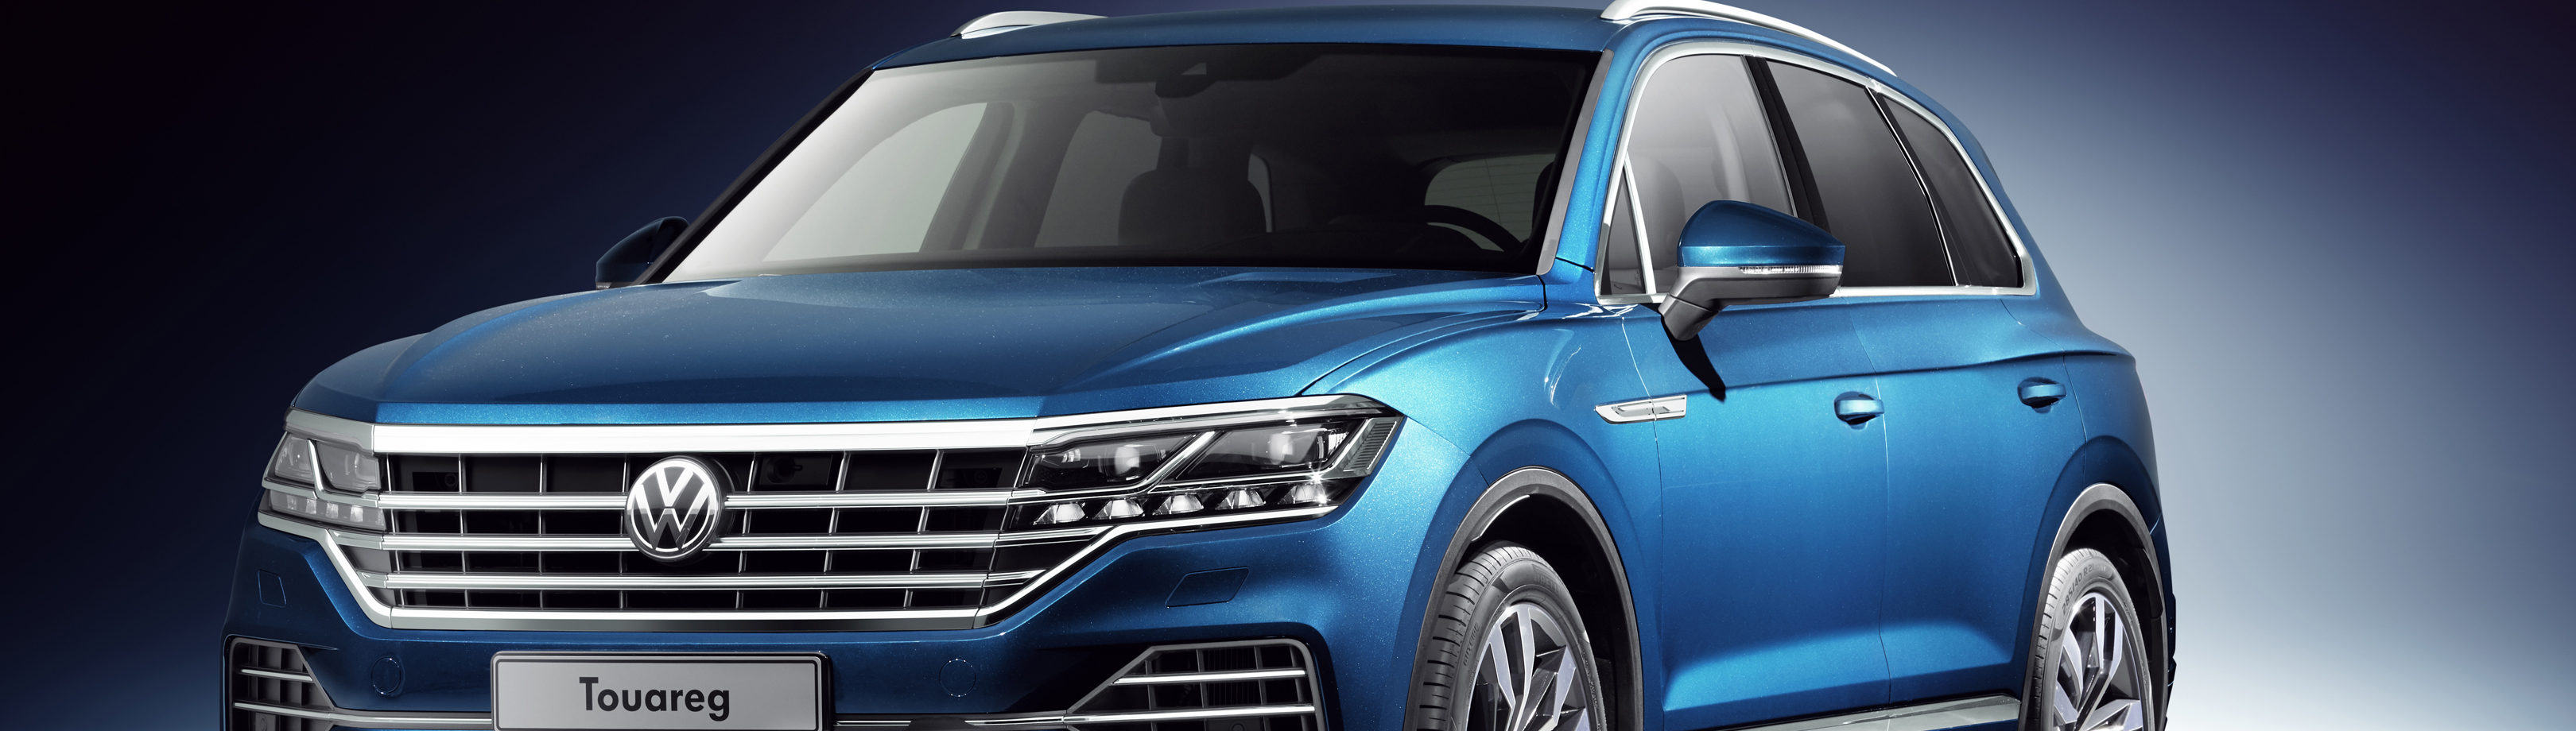 Outstanding Touareg Safety Rating